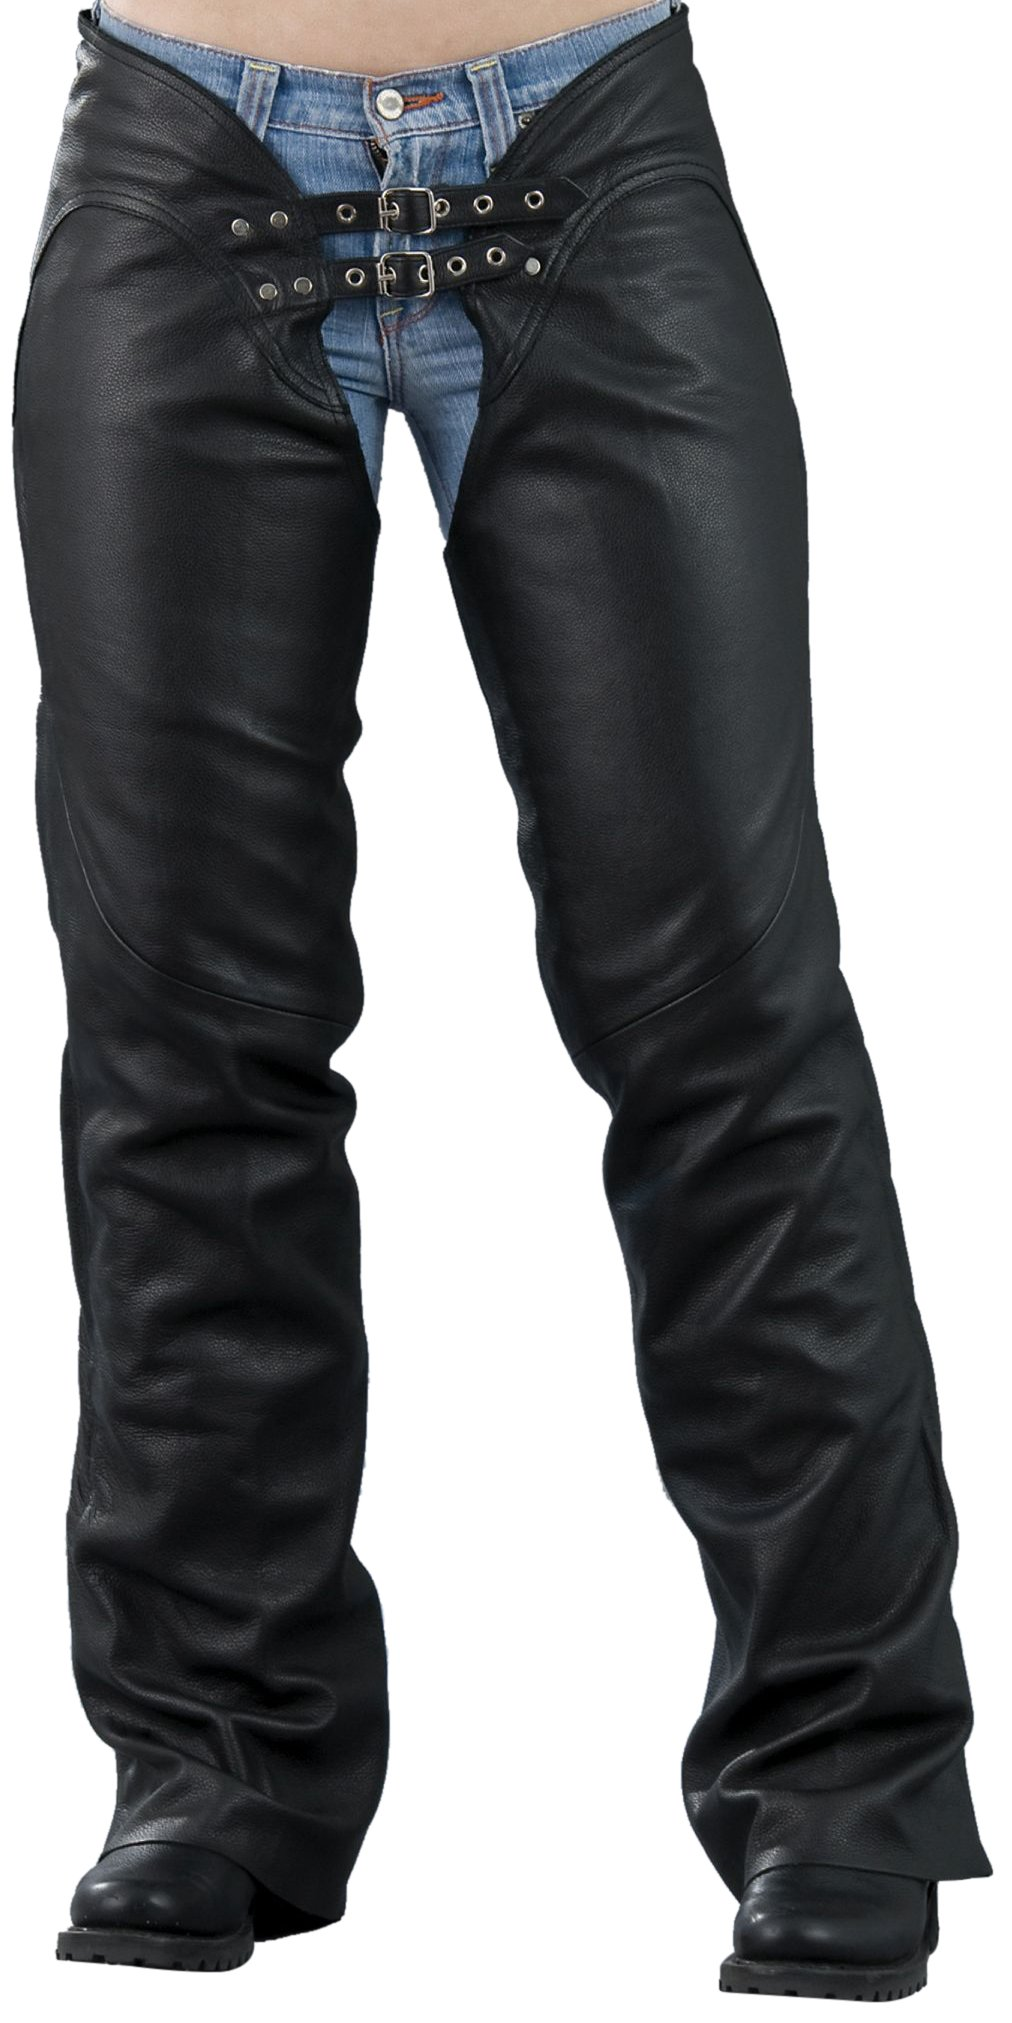 Milwaukee Women's Low Rise Double Buckle Leather Chaps (Black, 4X-Large)